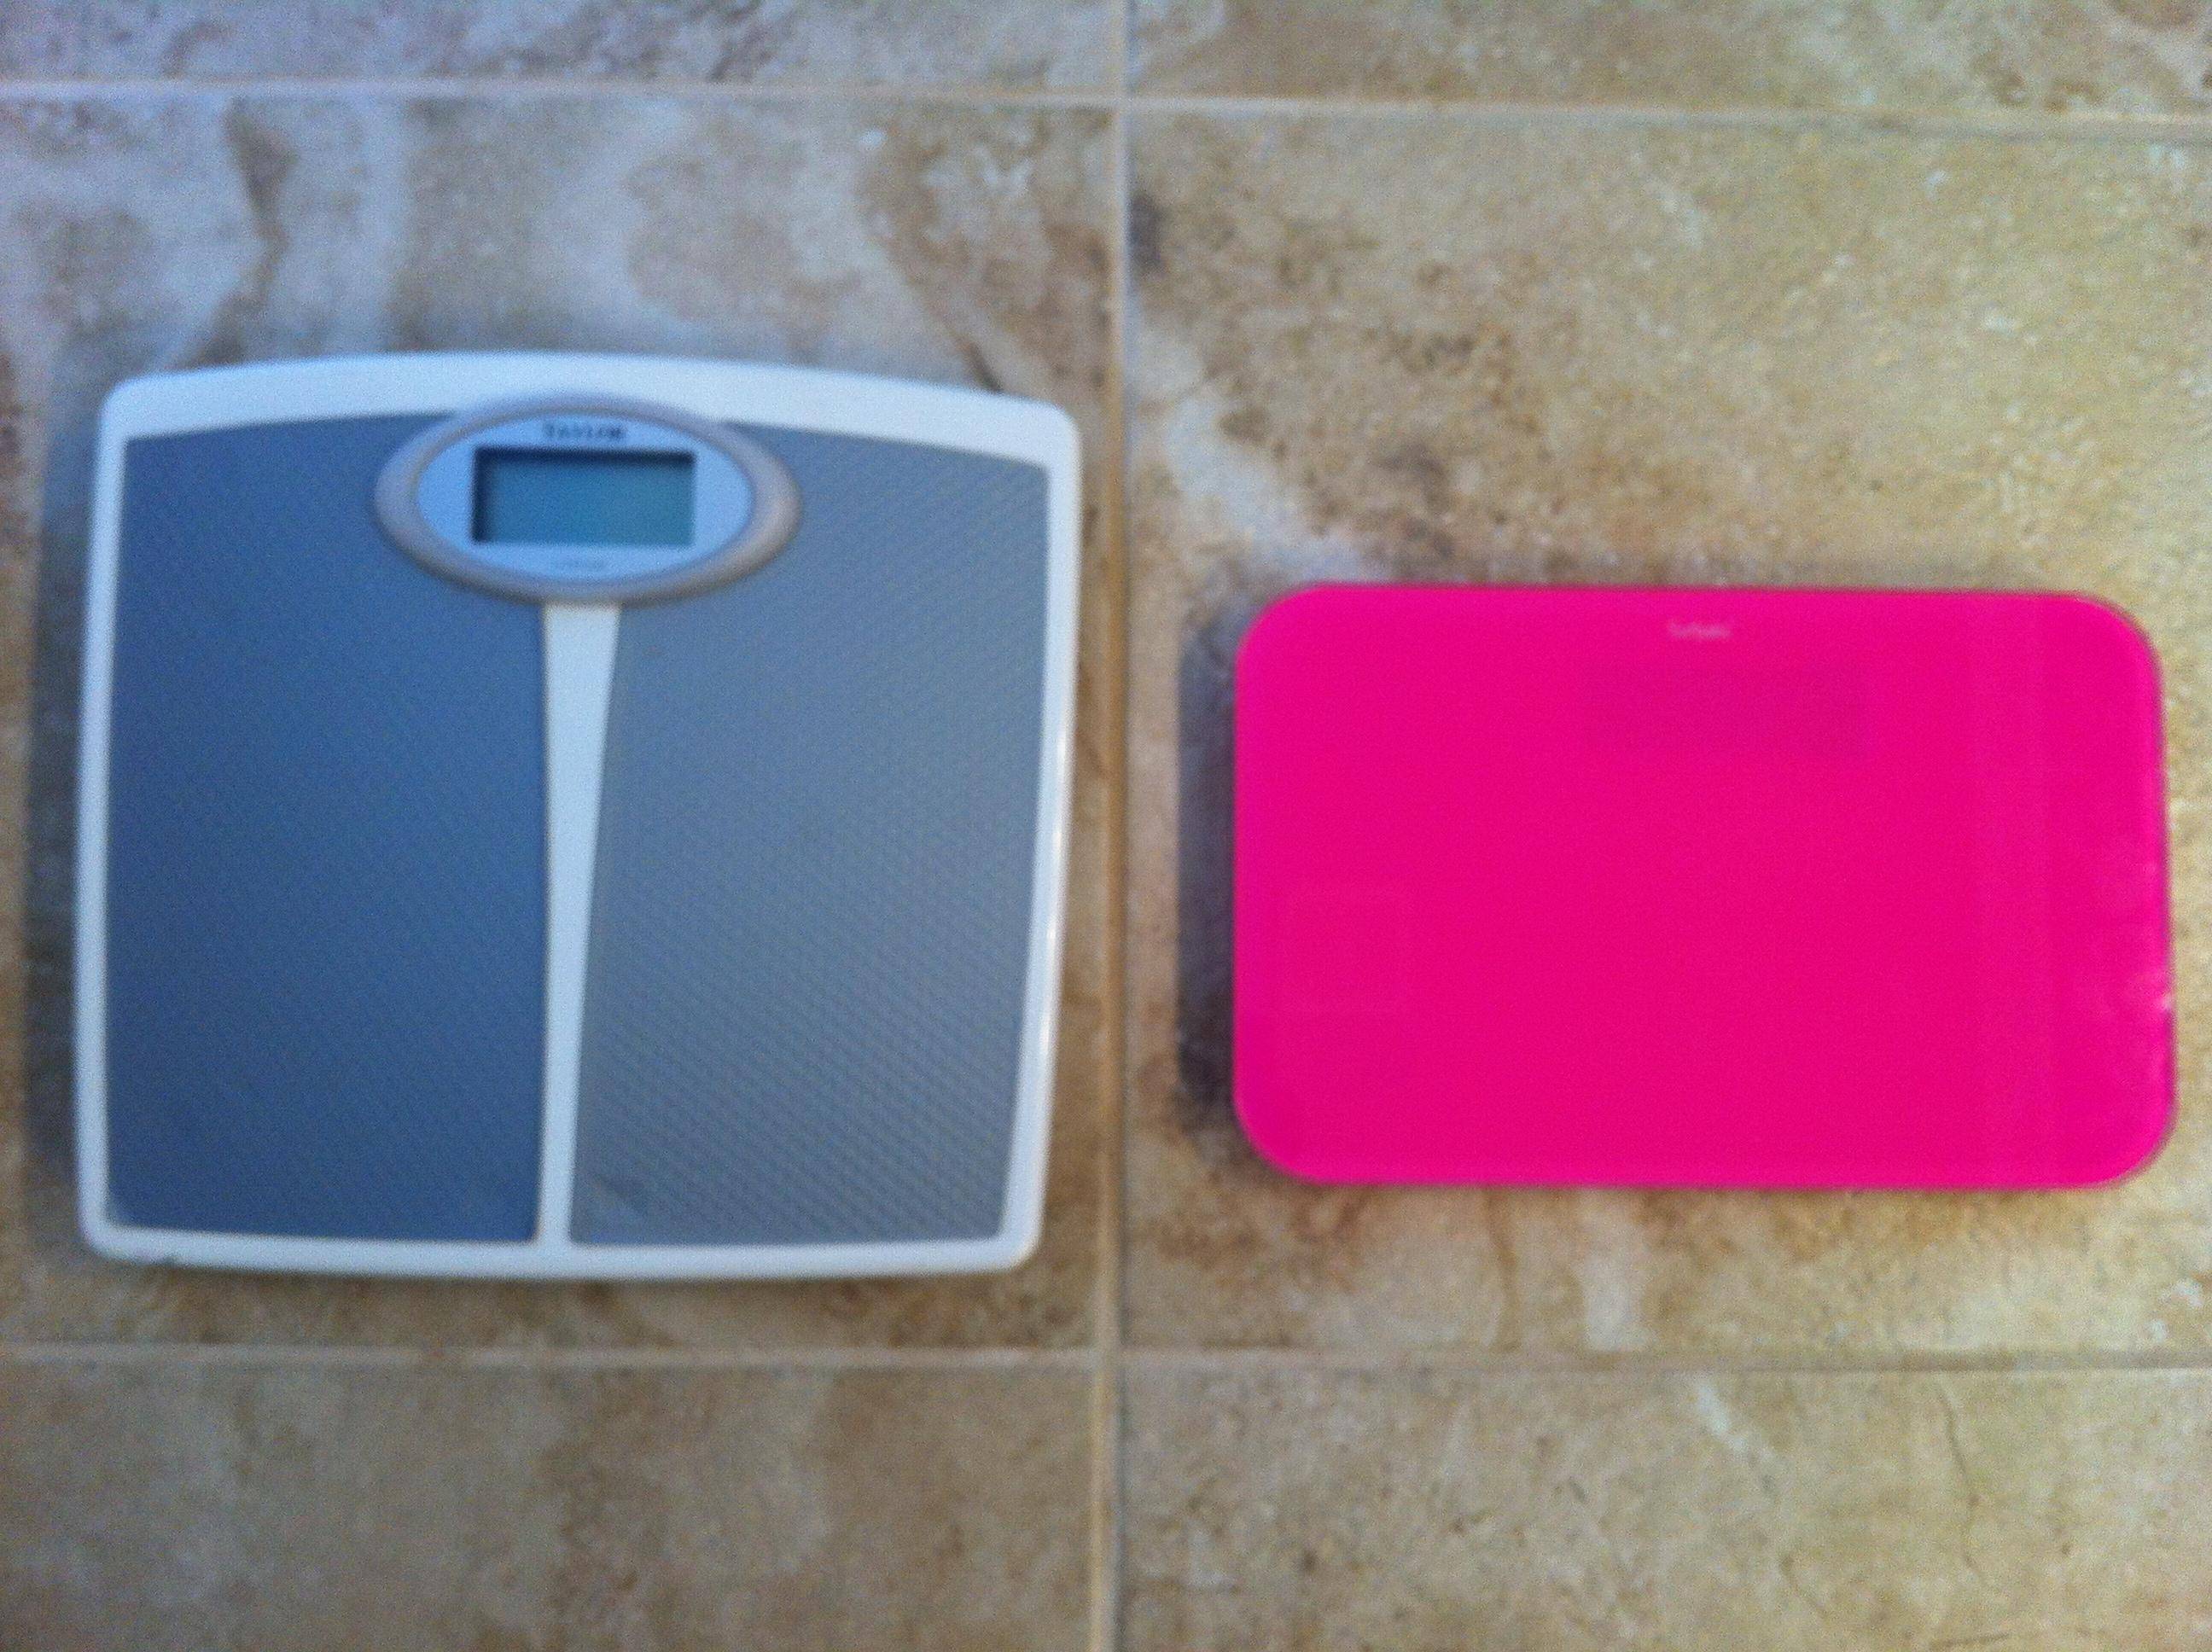 Surpahs Kitchen & Bathroom Scale and Cutting Board Review and Giveaway